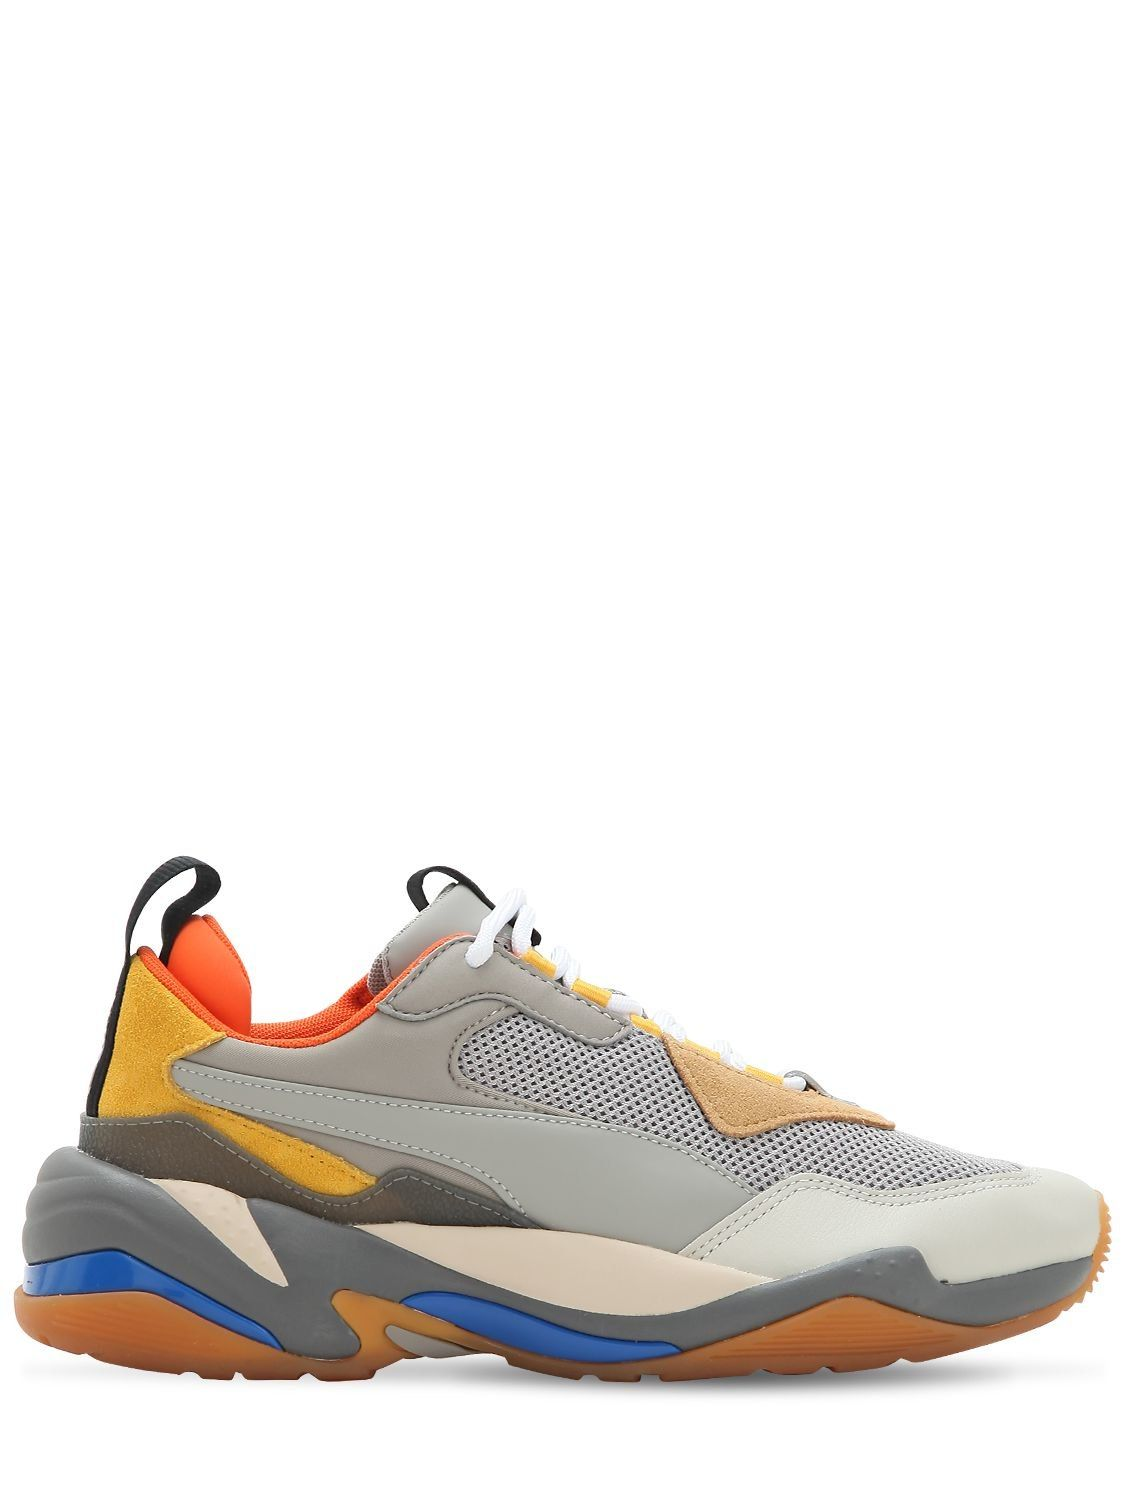 Puma Thunder Spectra Leather   Mesh Sneakers 1bda55905